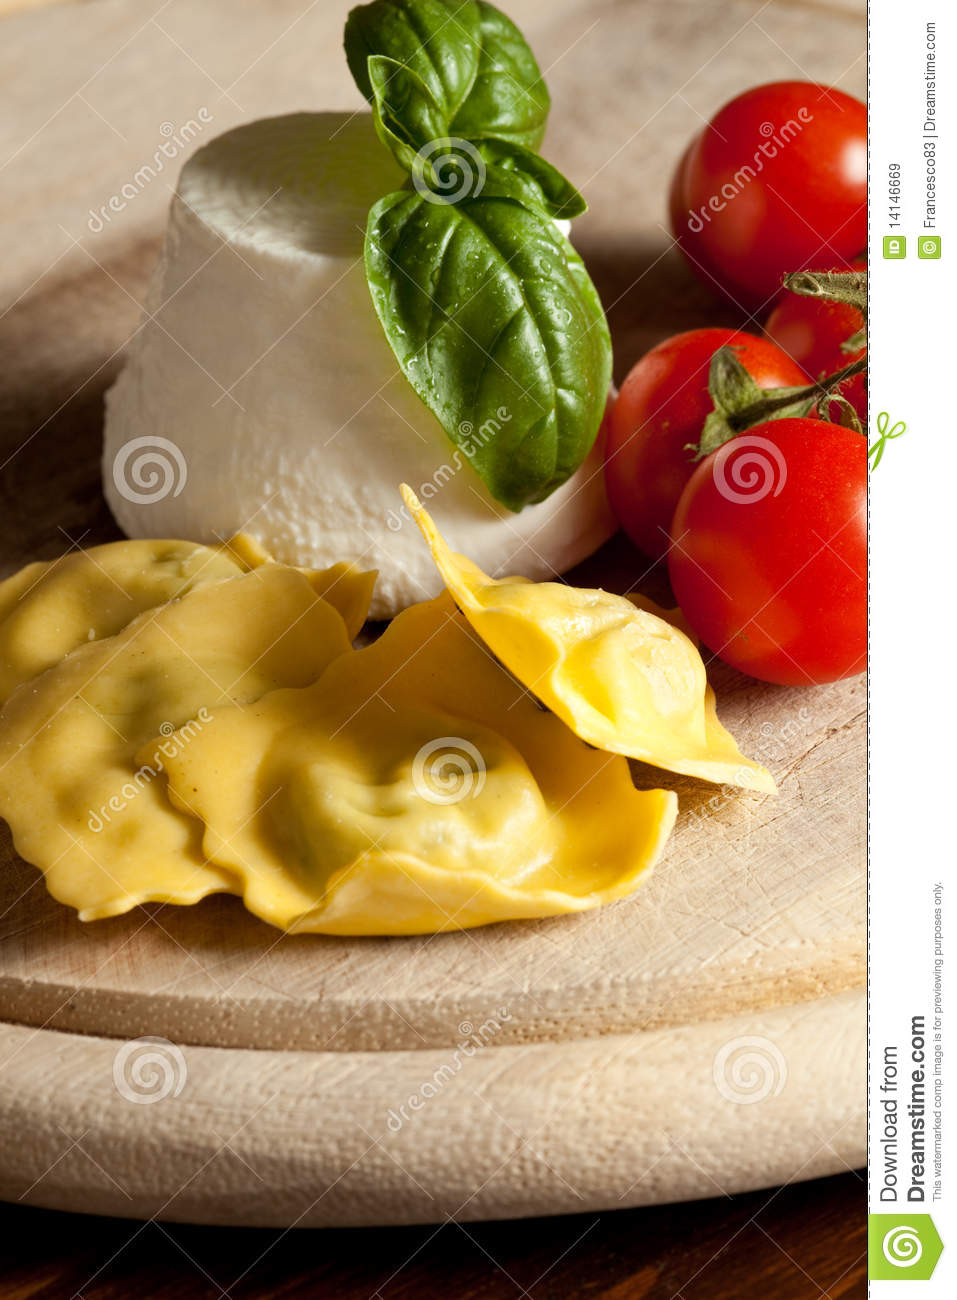 Ravioli With Ricotta And Tomatoes Stock Image - Image ...